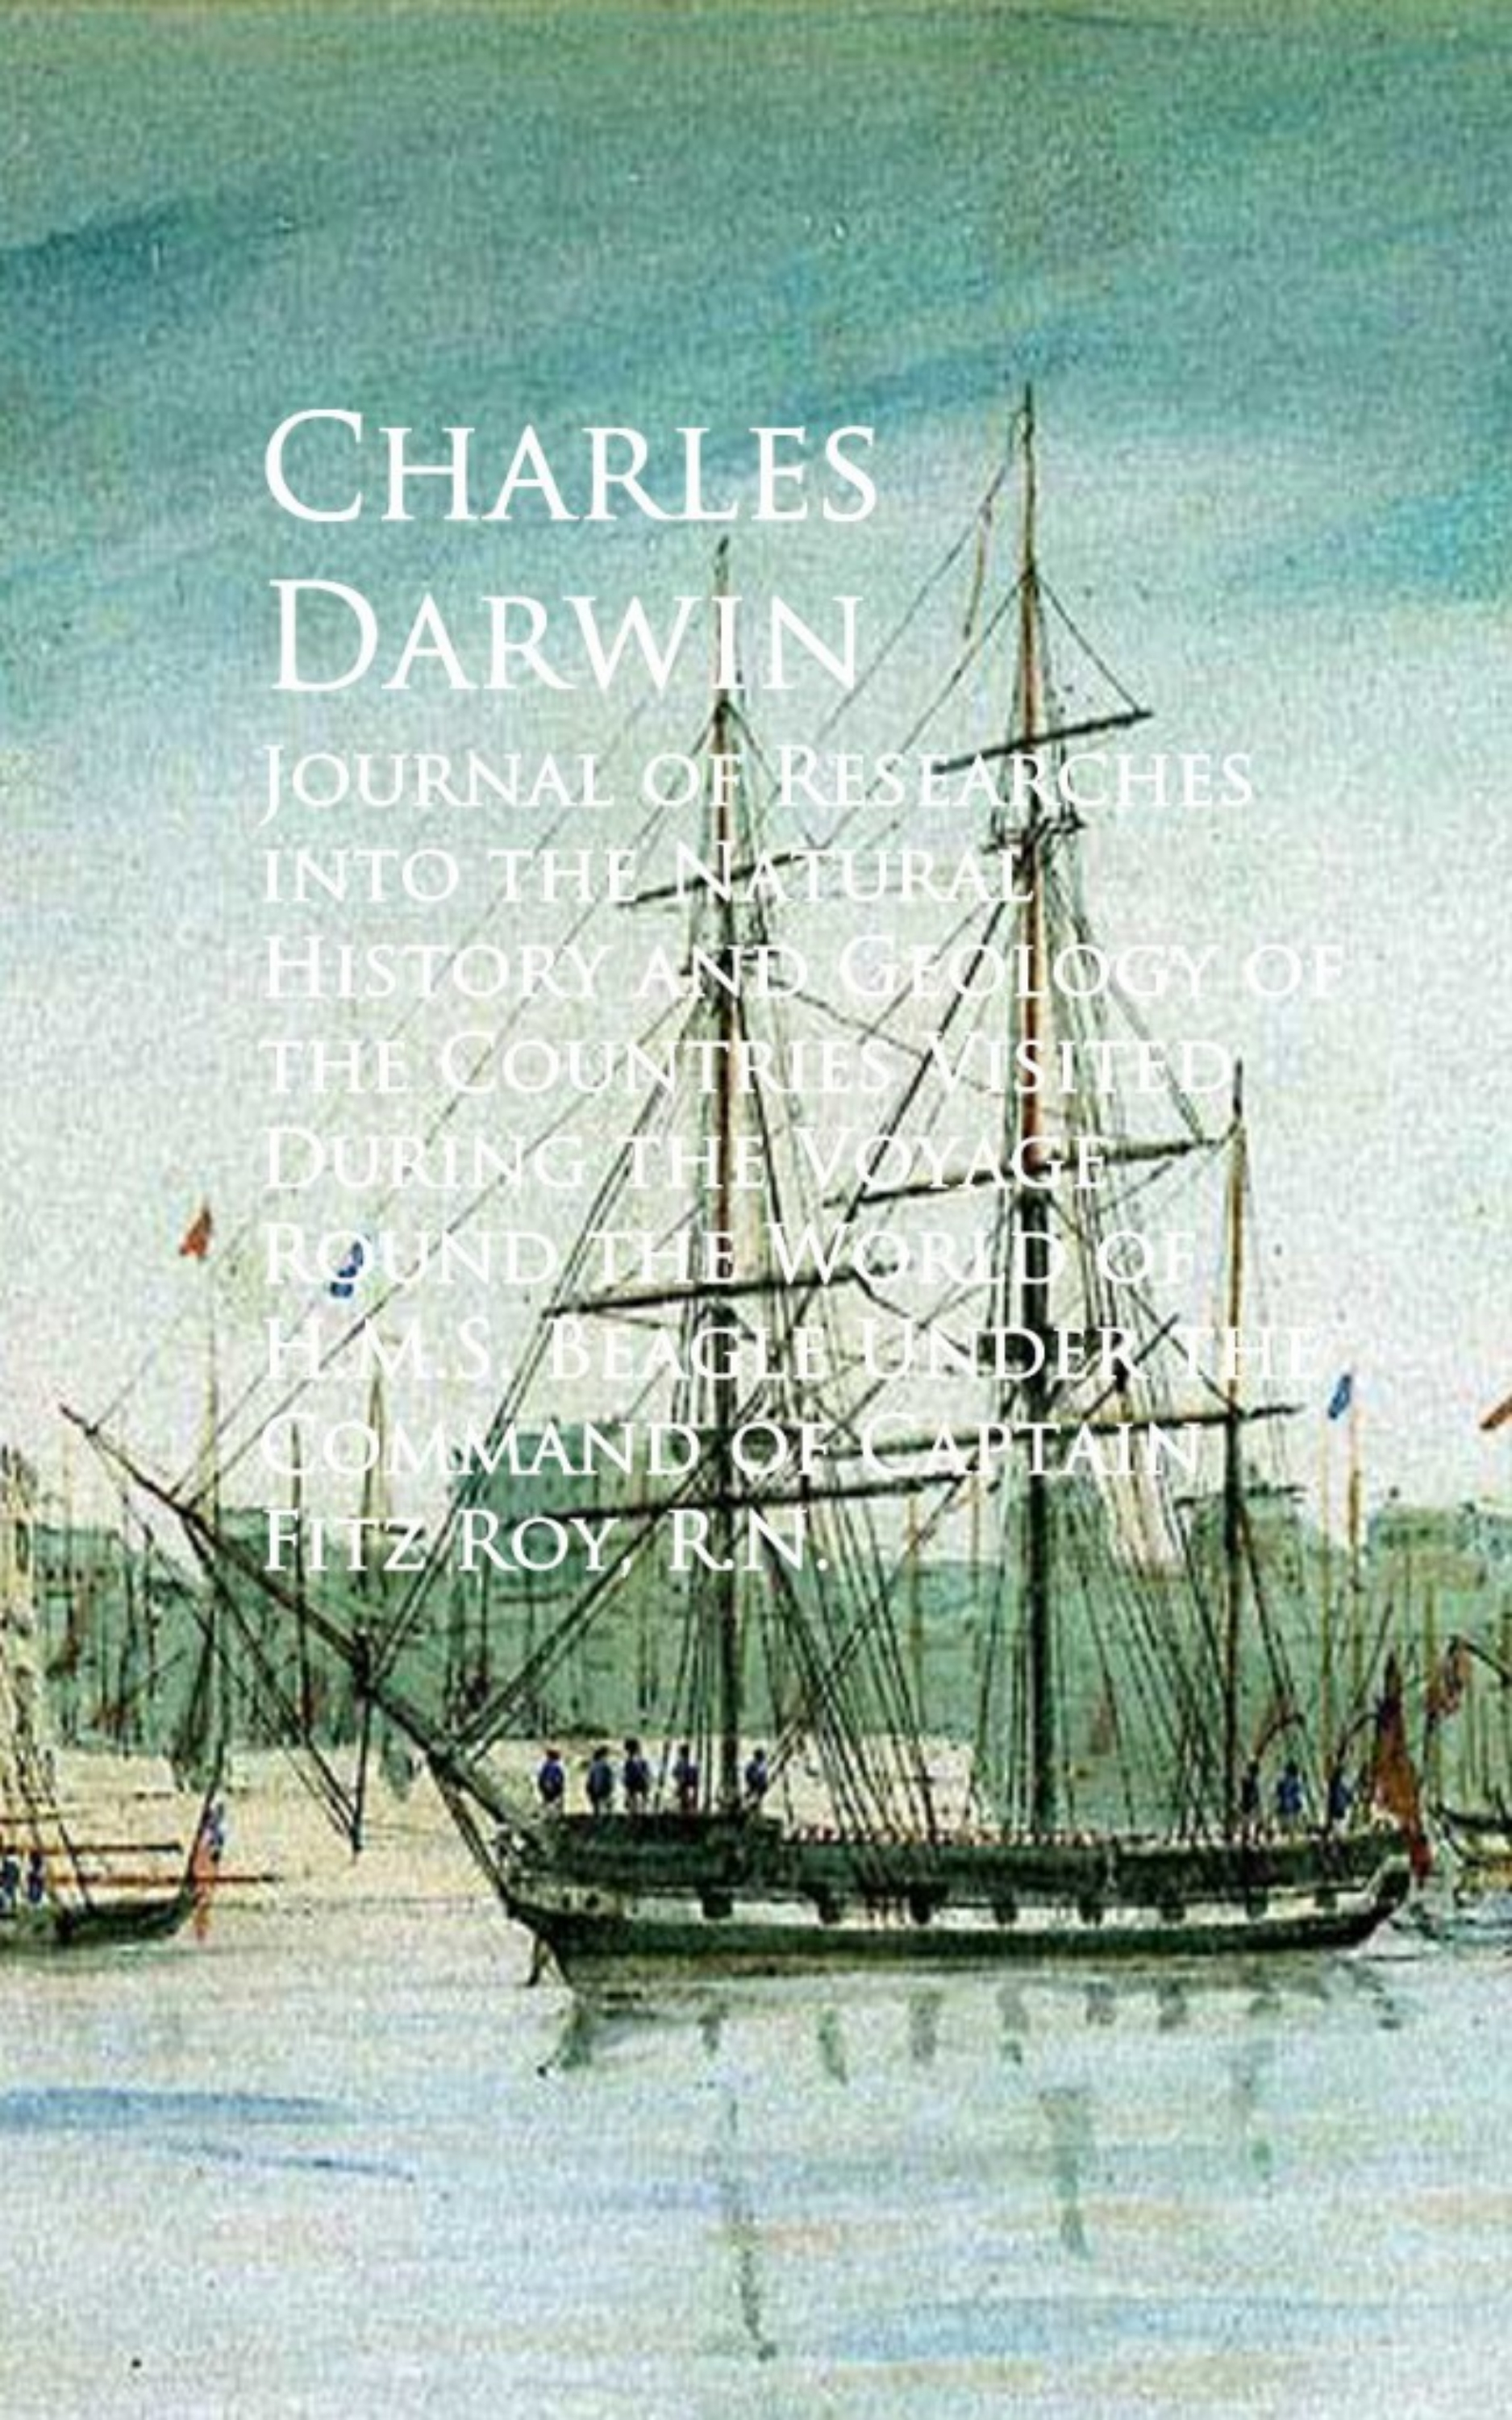 Charles Darwin Journal of Researches into the Natural History and Round the World of H.M.S. Beagle